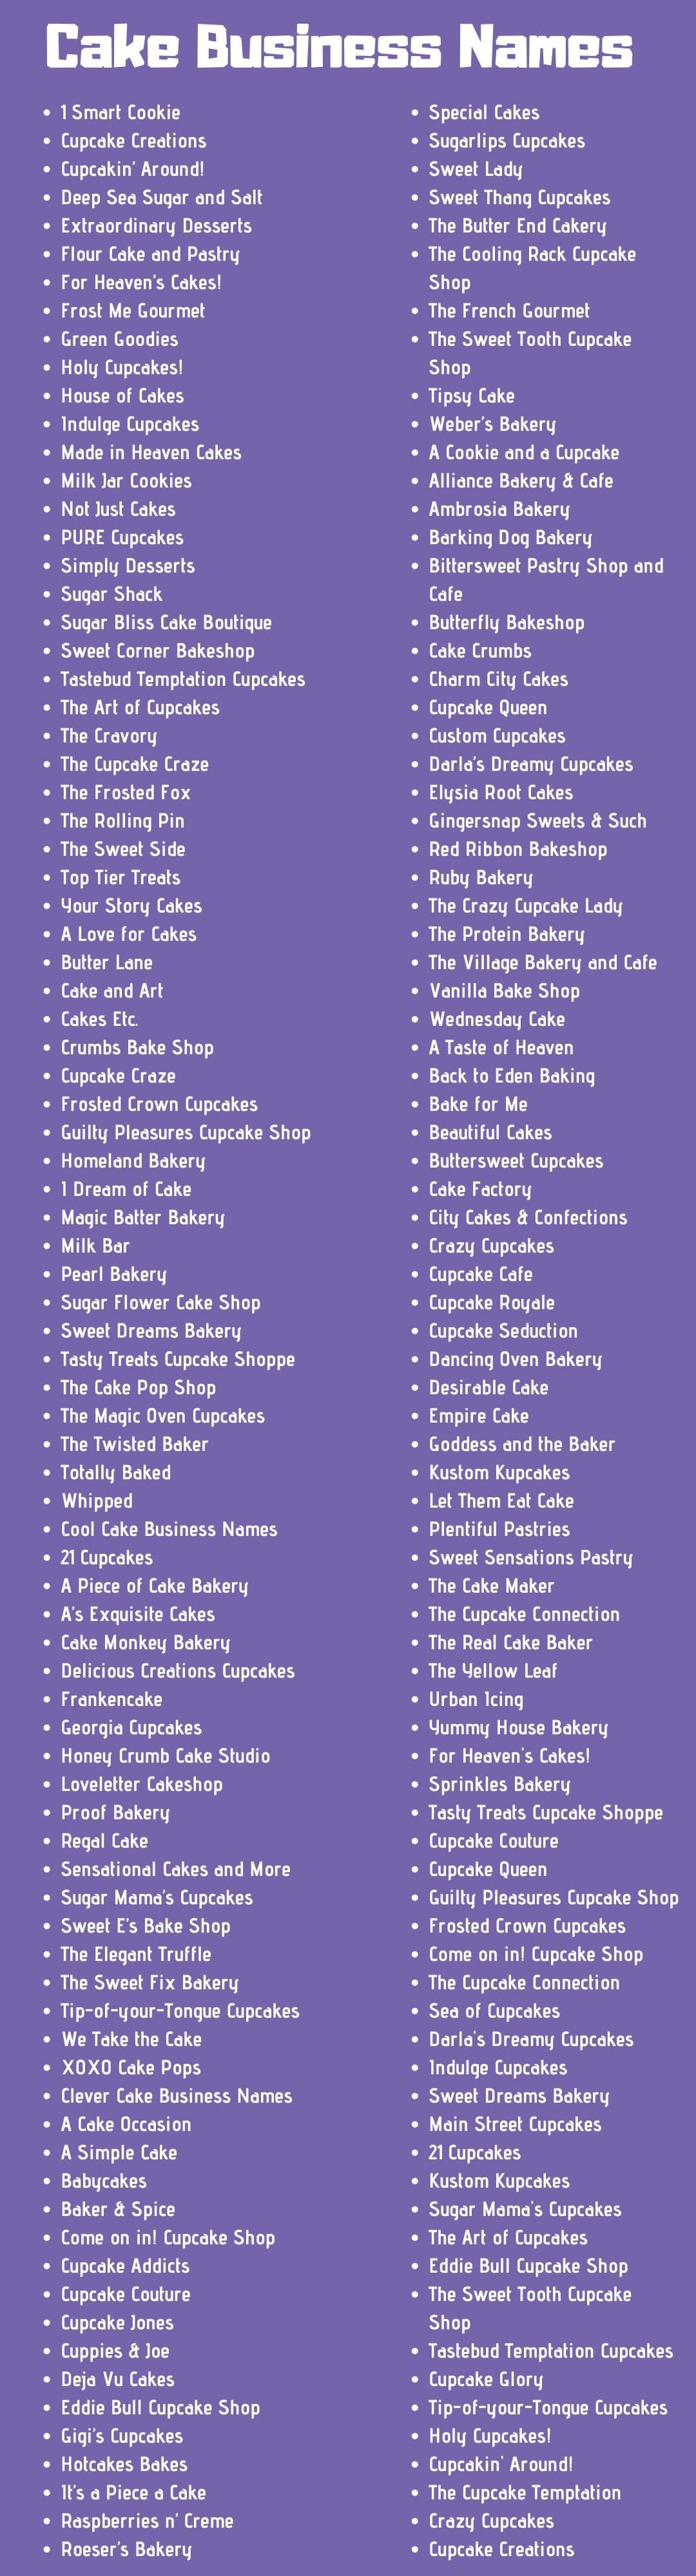 350 Cake Business Names Ideas And Suggestions